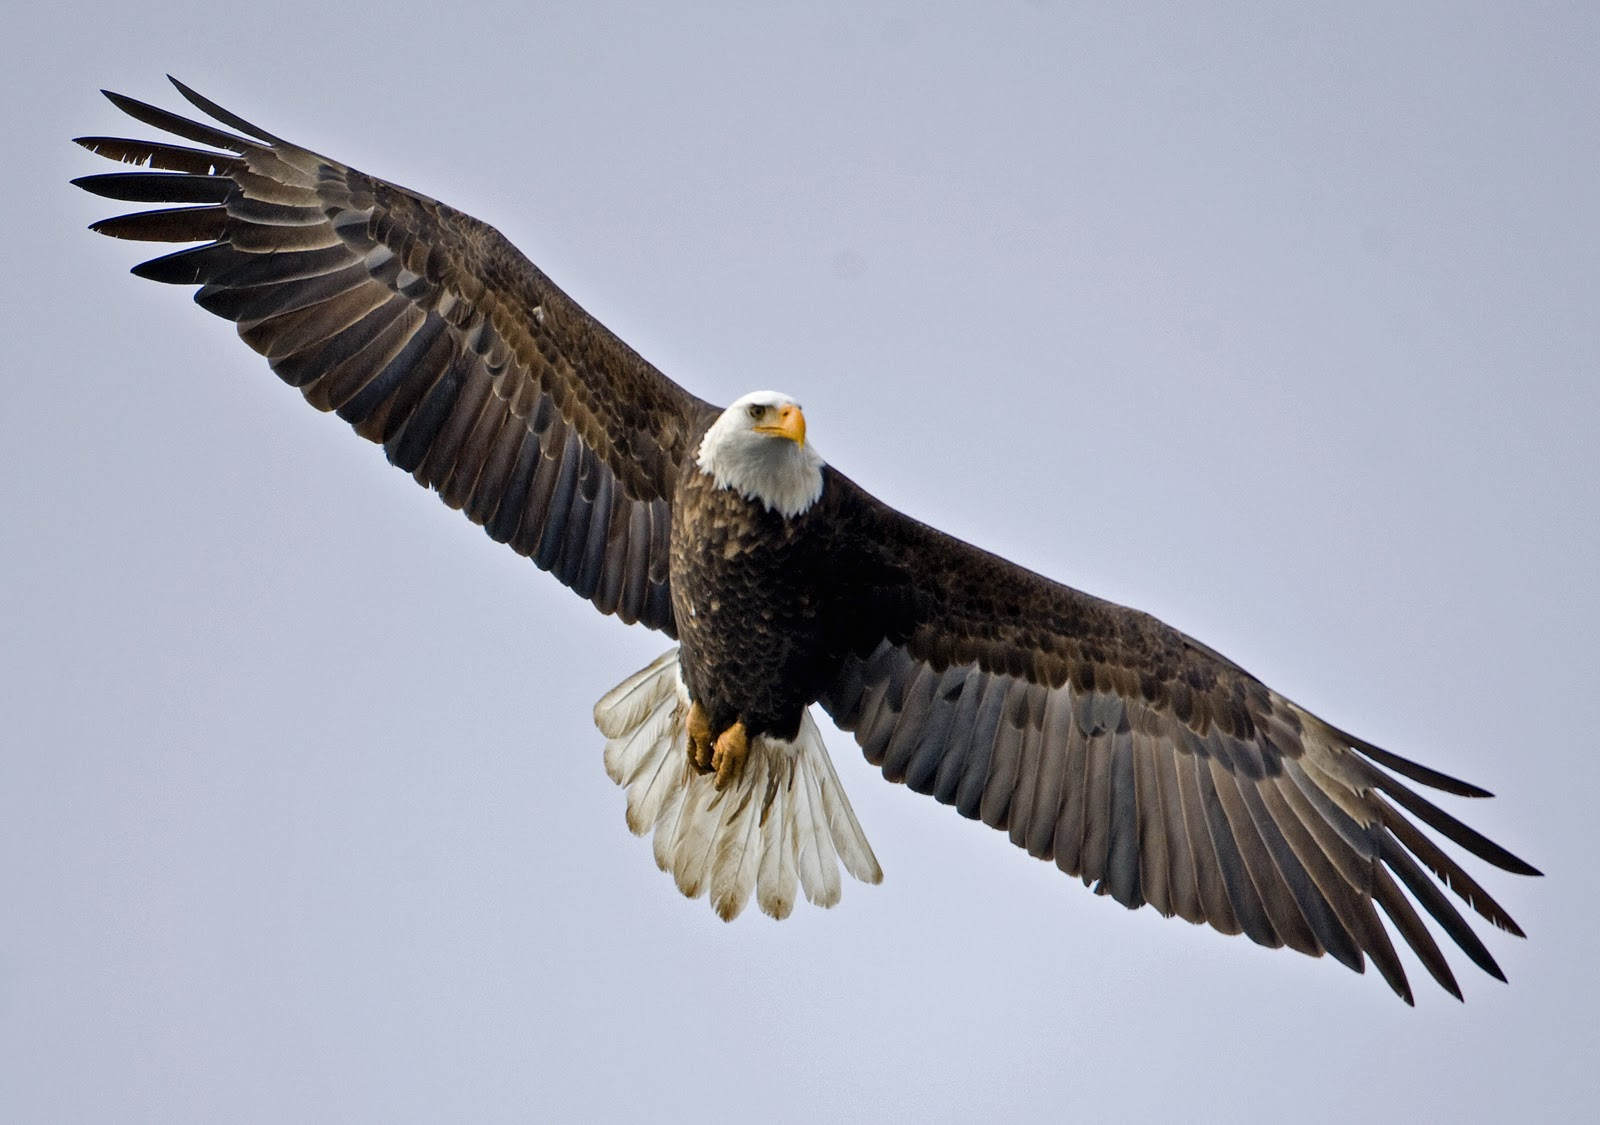 Eagle bird images - photo#8